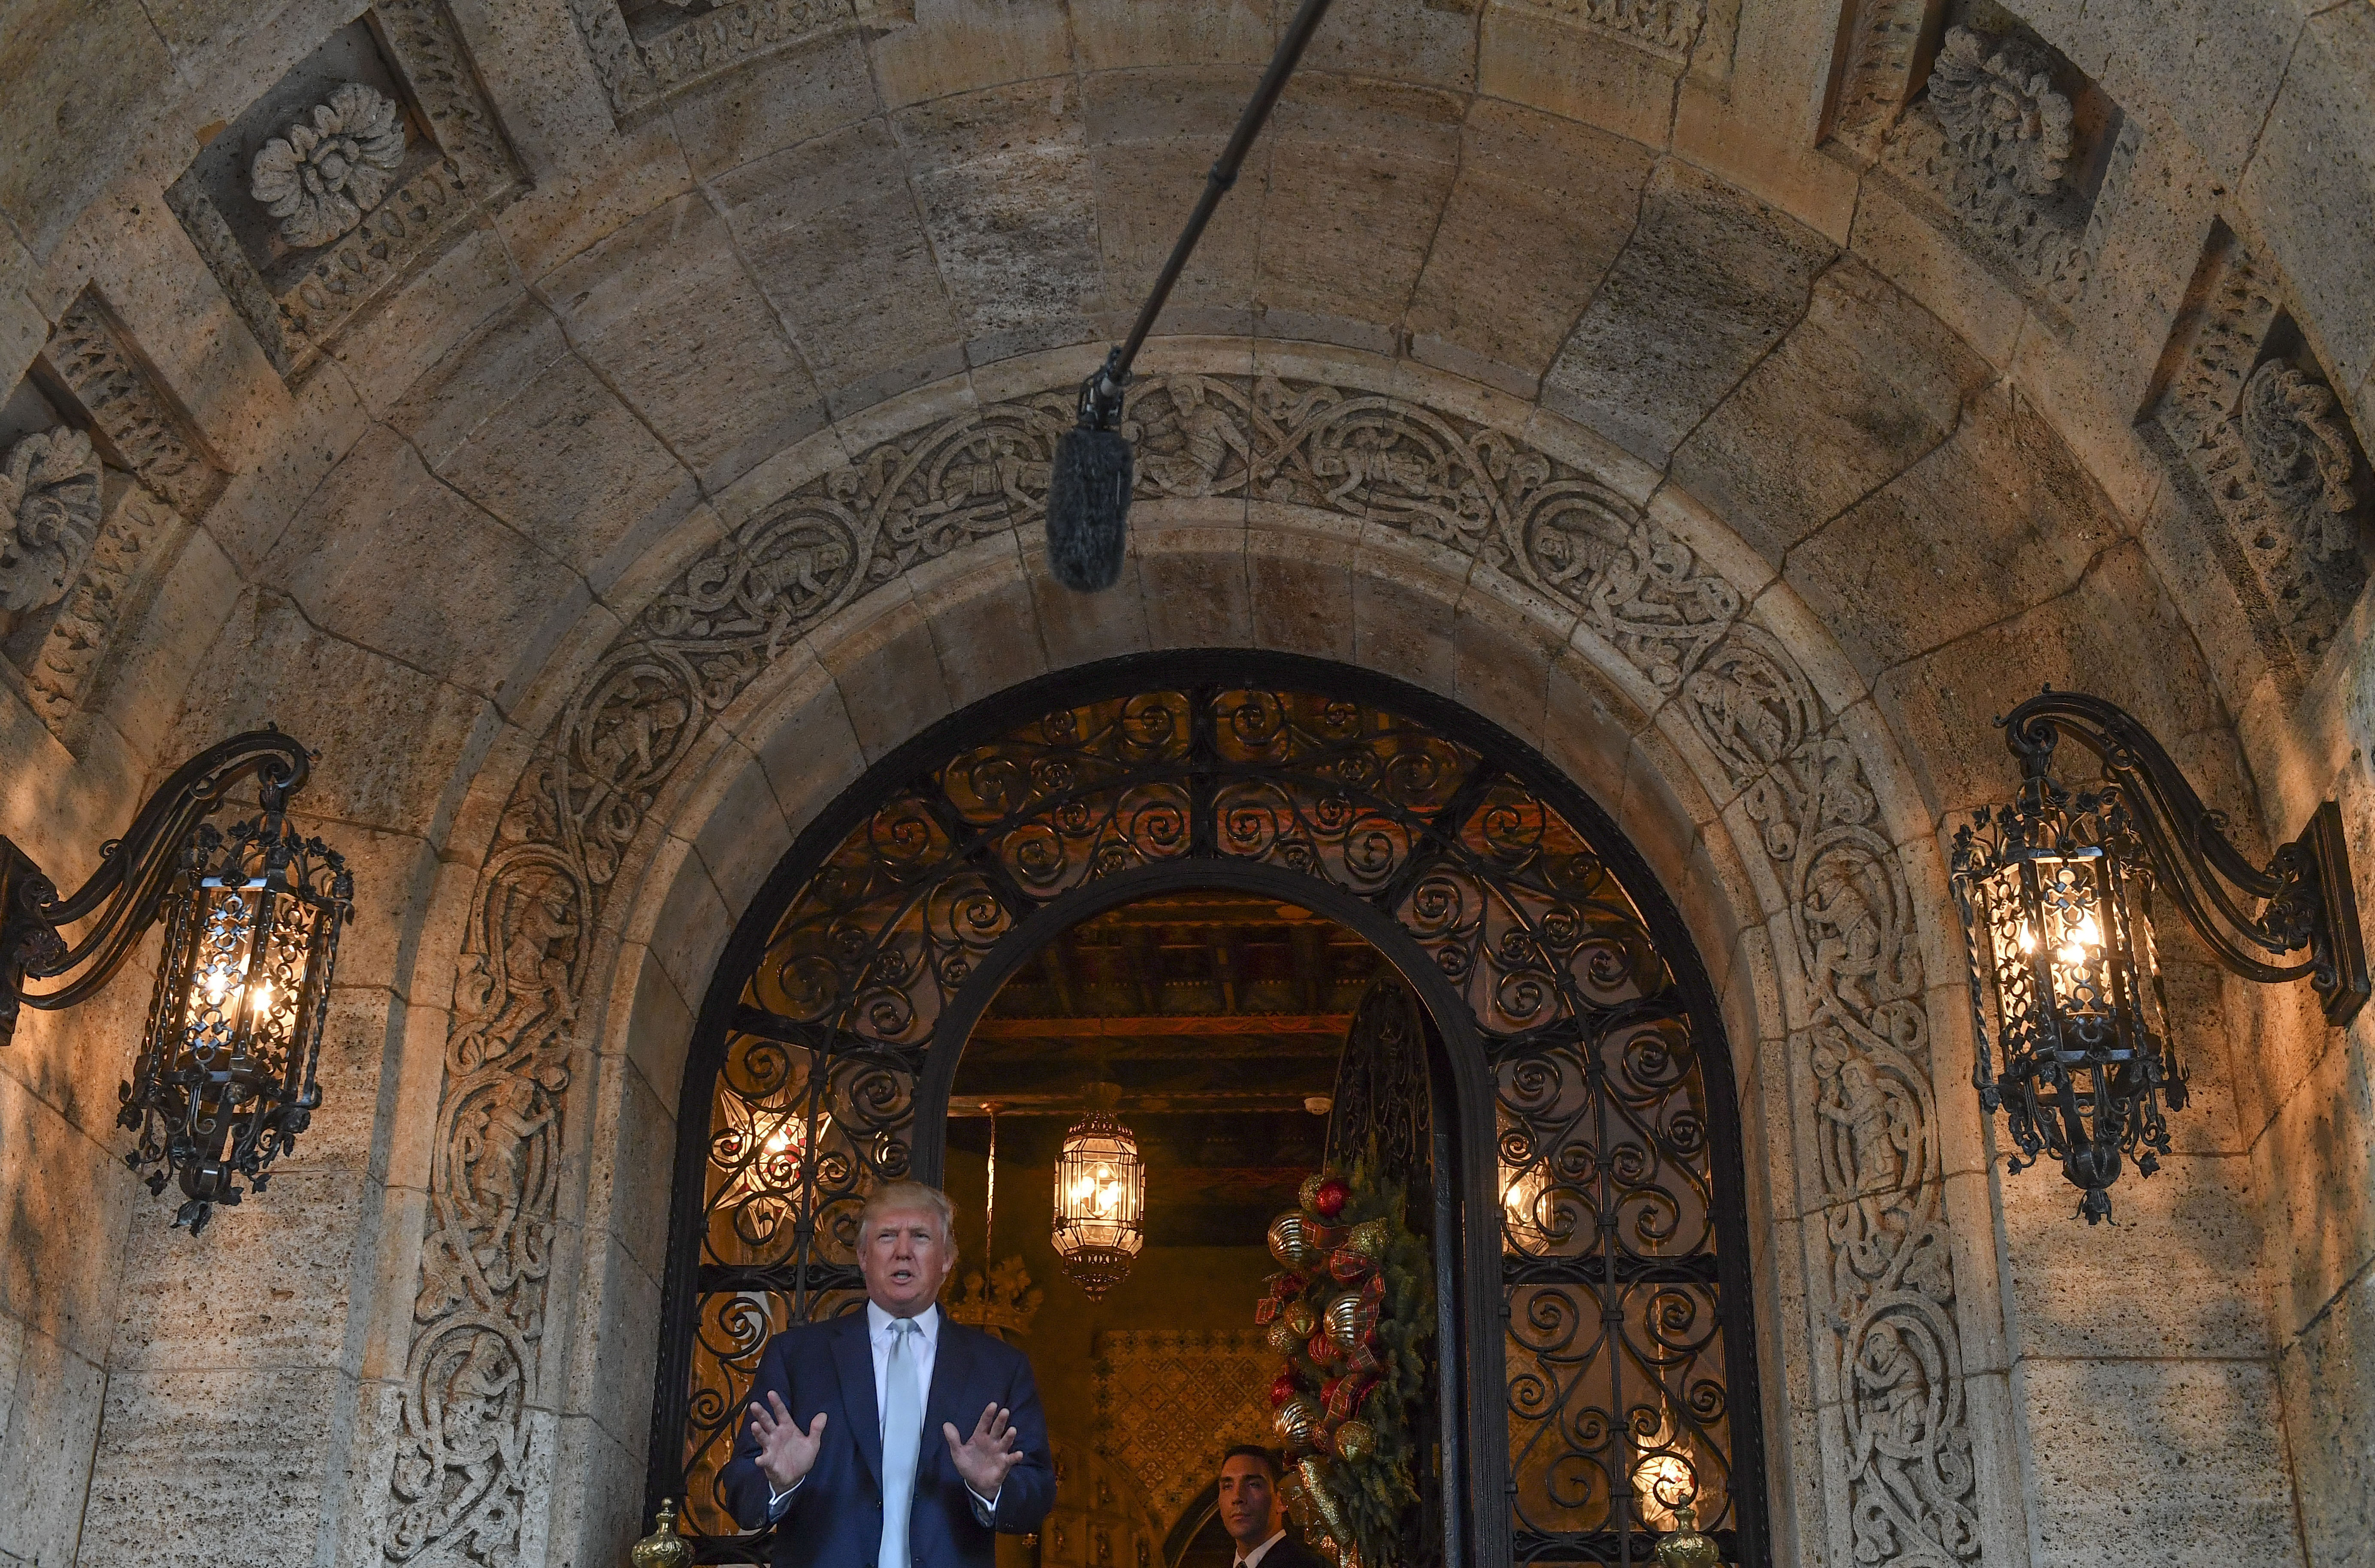 Donald Trump at Mar-a-Lago Club in December 2016 in Palm Beach, Fla. MUST CREDIT: Washington Post photo by Ricky Carioti